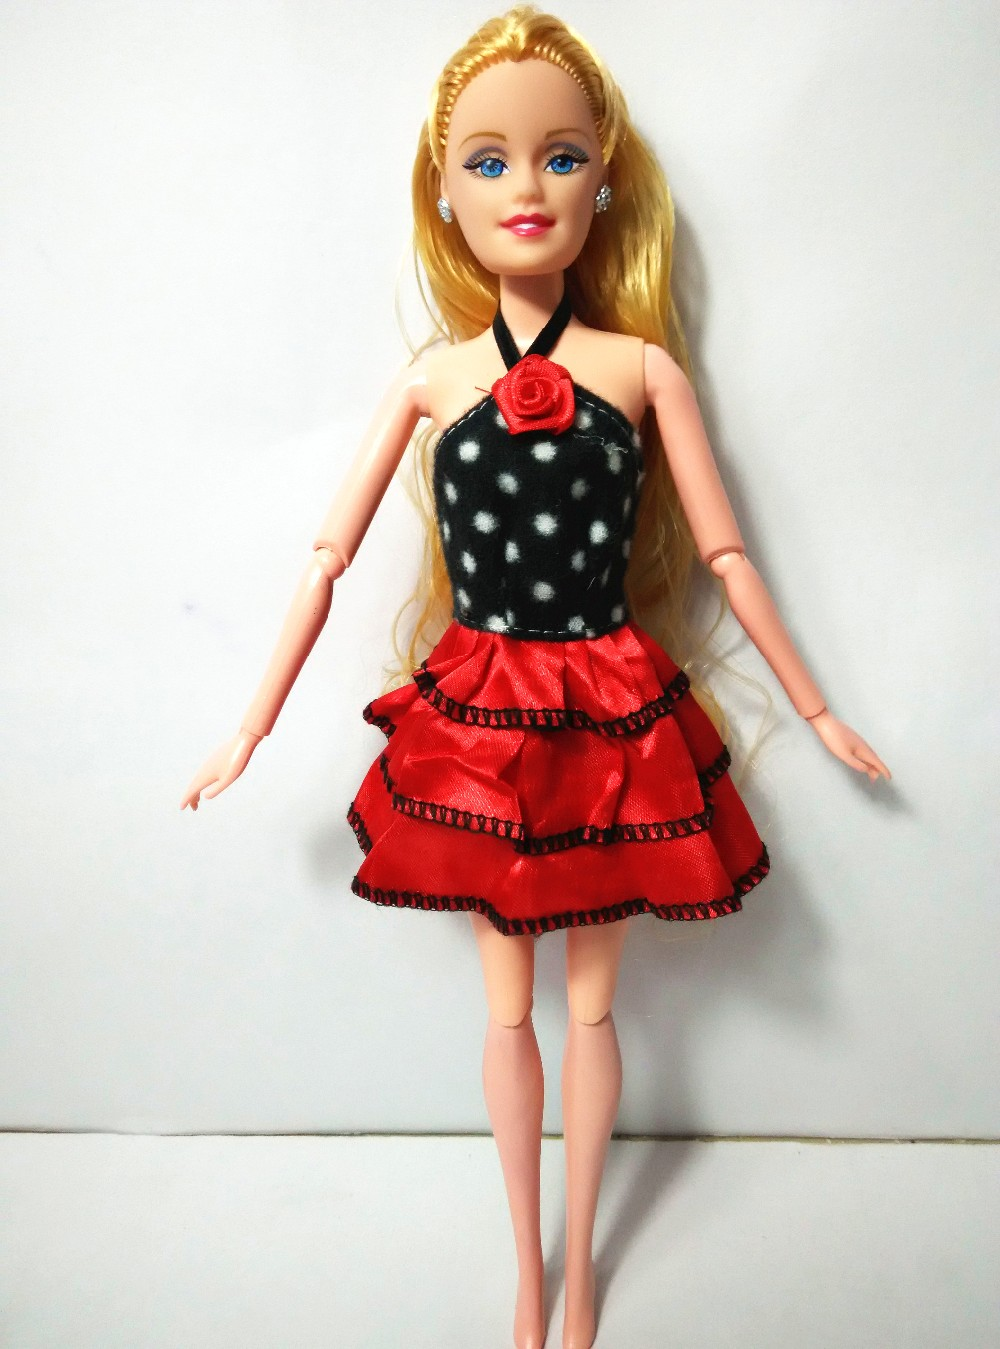 New Lovely Handmade Get together Garments Trend Costume for Noble Barbie Doll , free delivery Blended fashion 20 issues aa458OEM